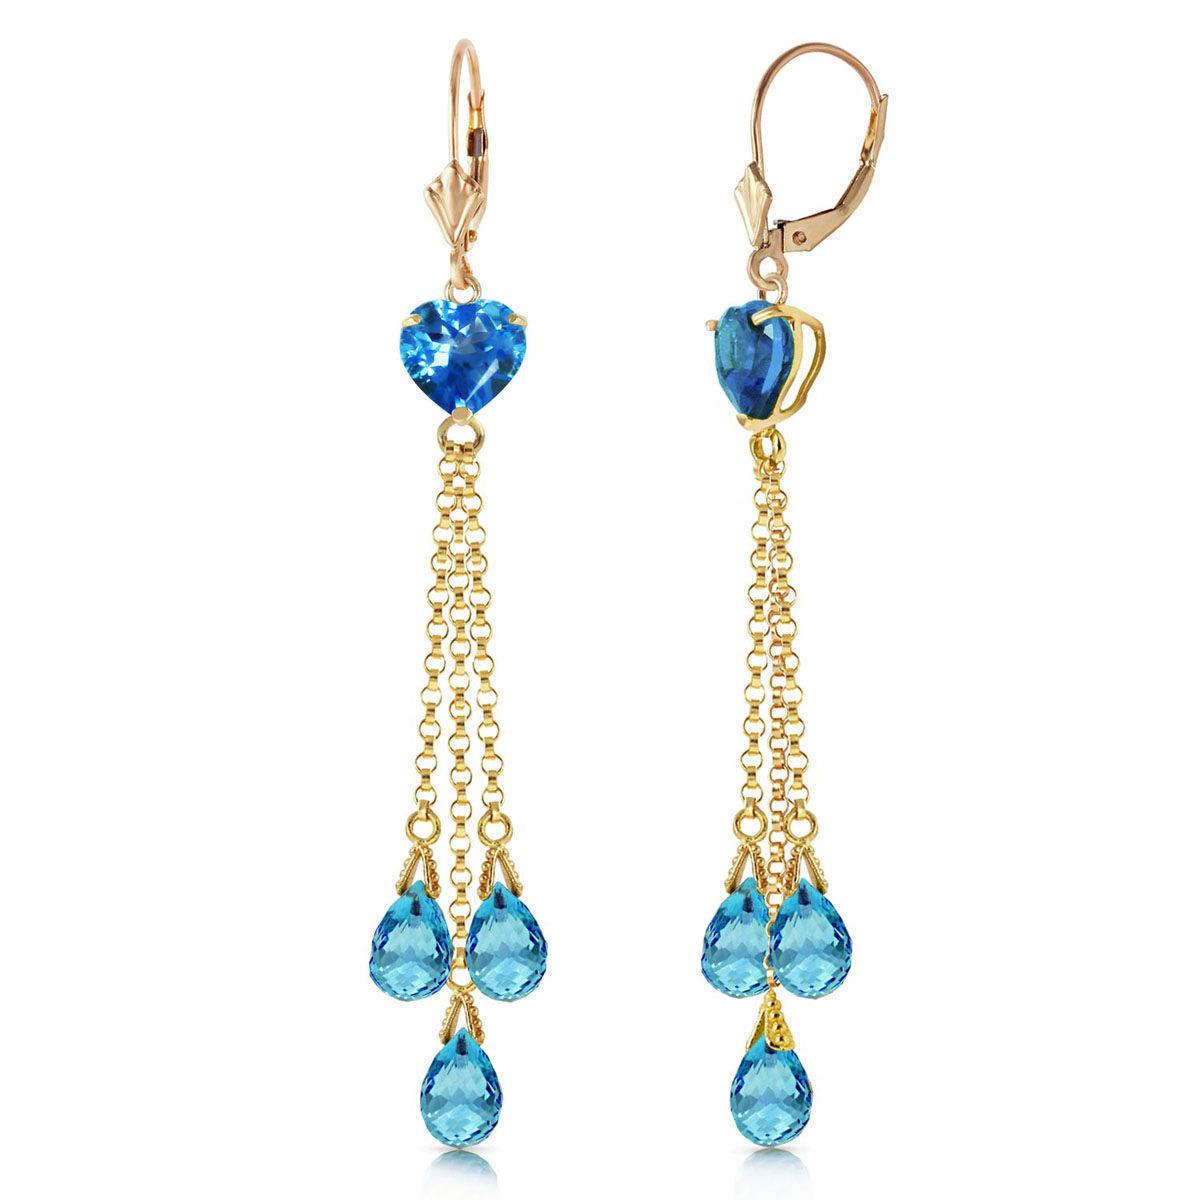 Blue Topaz Vestige Drop Earrings 9.5 ctw in 9ct Gold